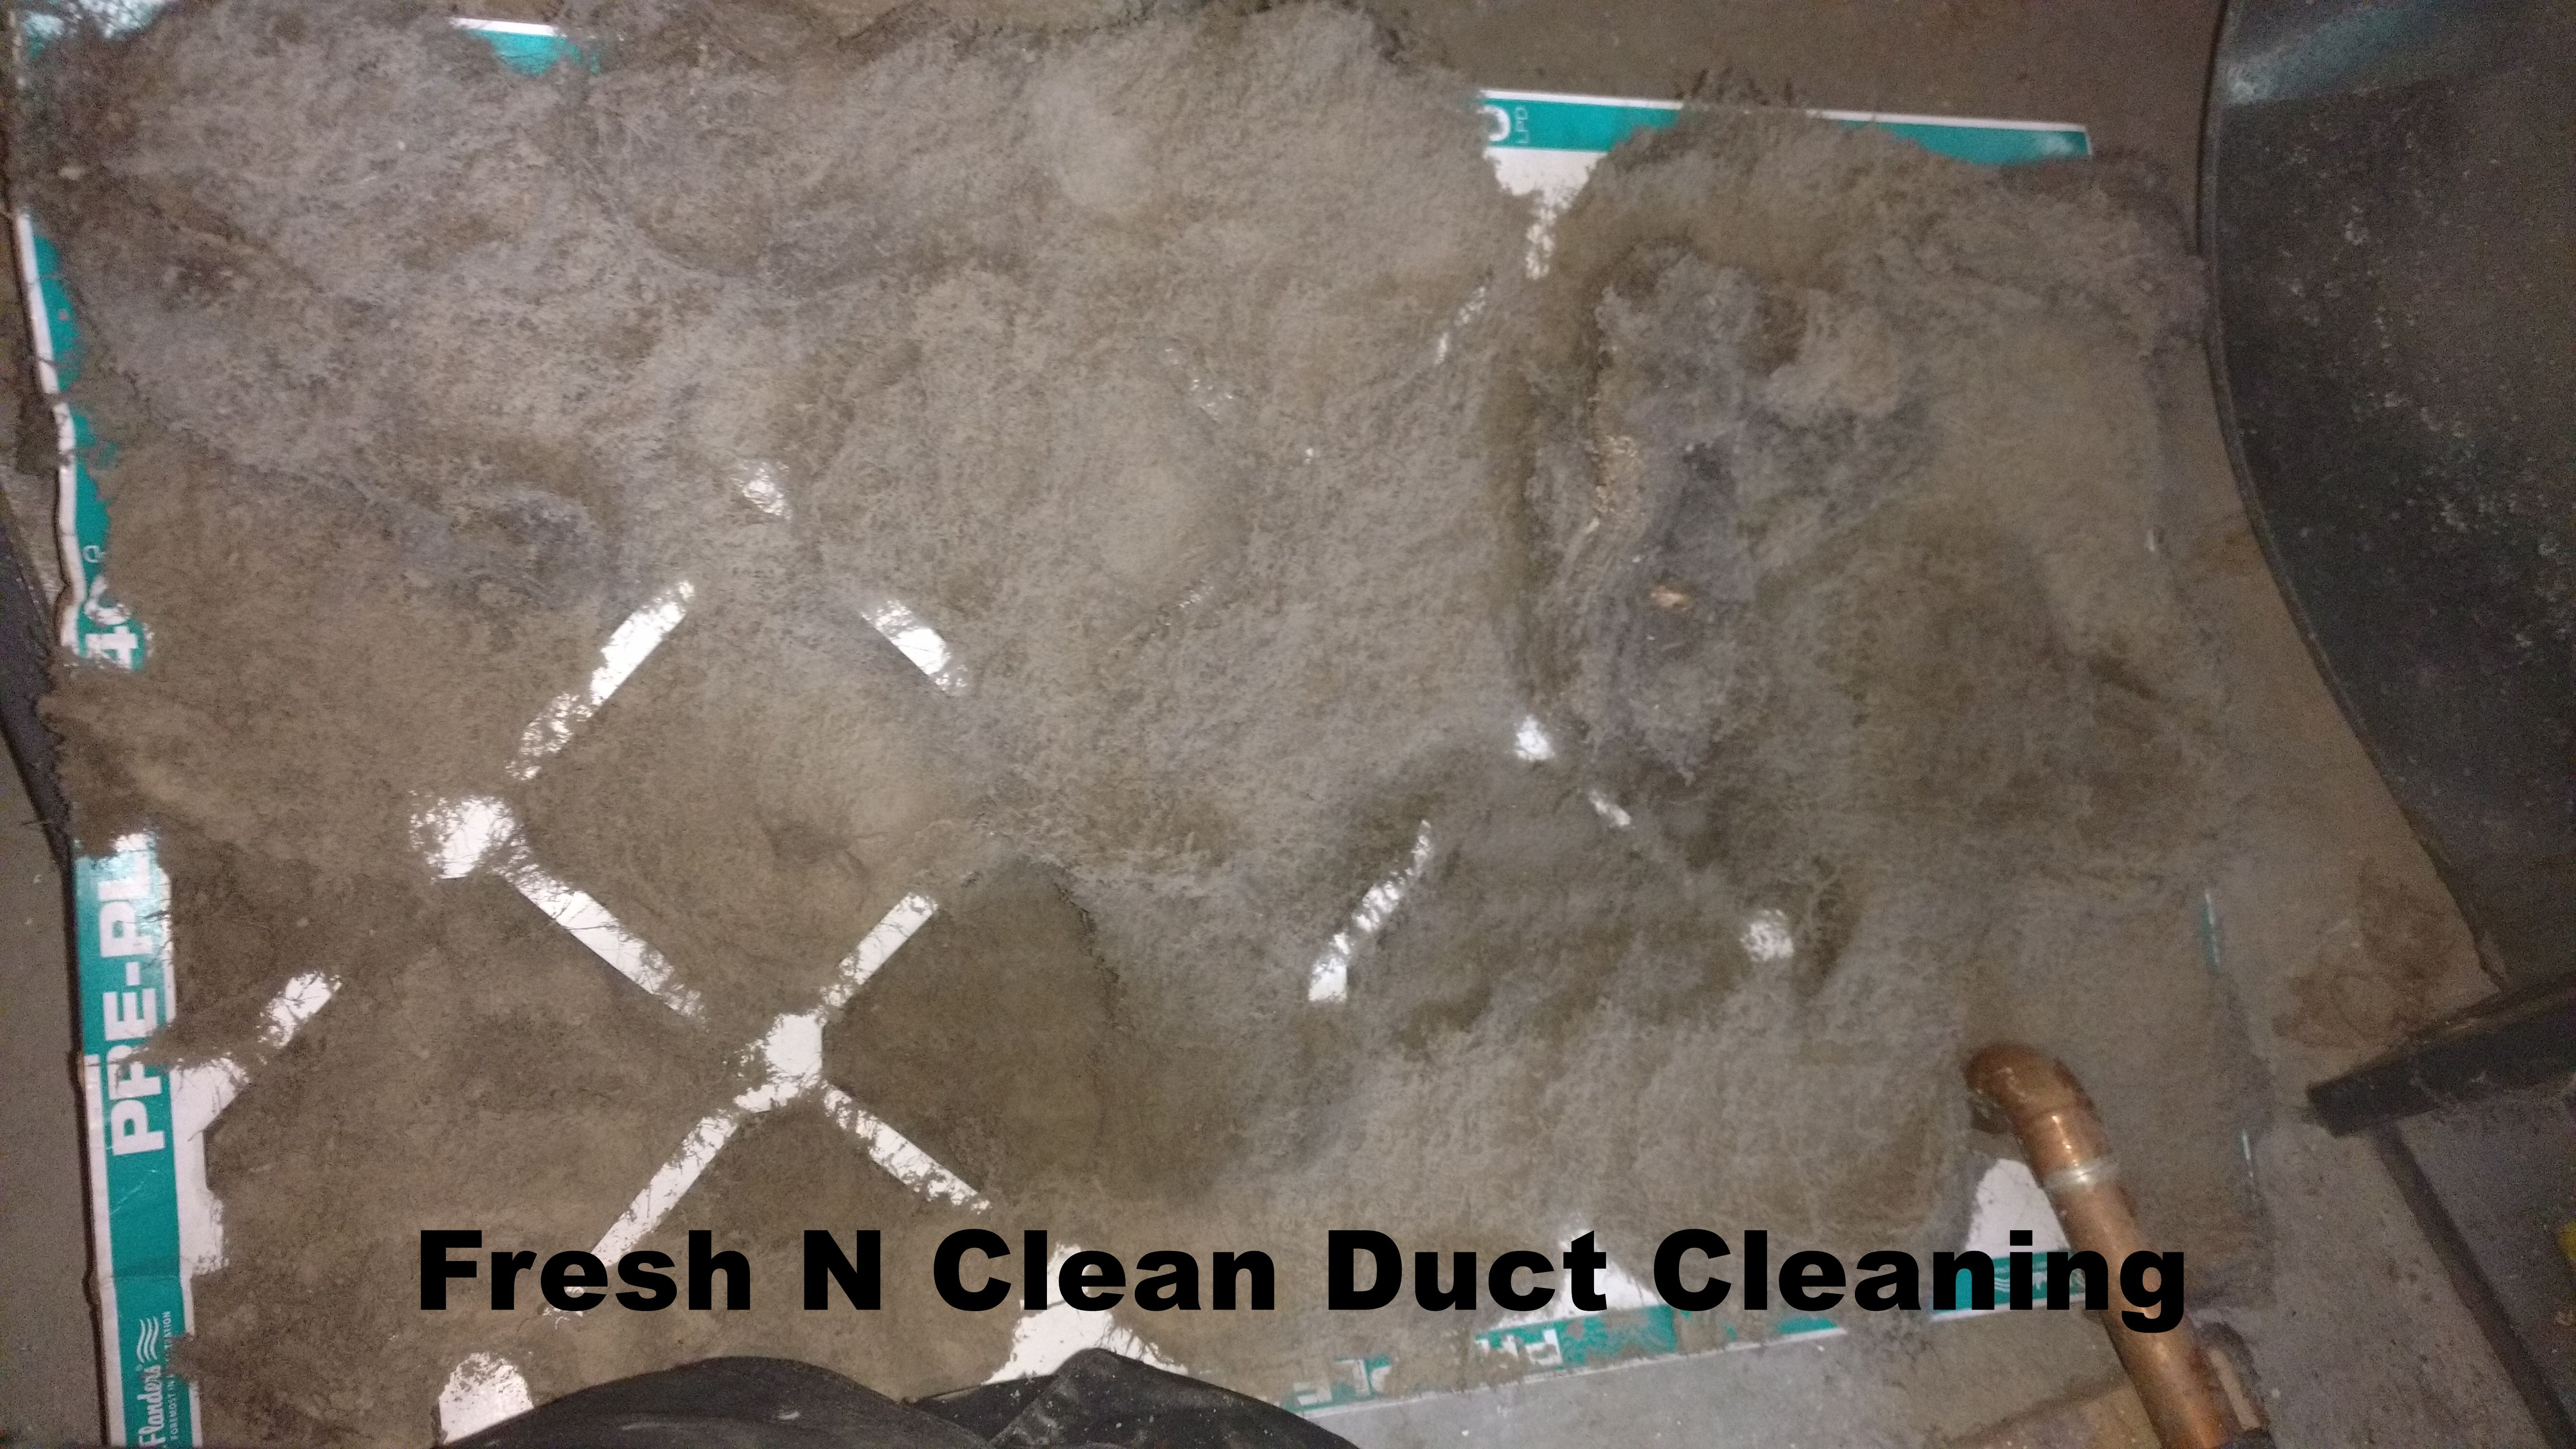 Pin by Fresh N Clean Duct Cleaning on Air Duct Cleaning